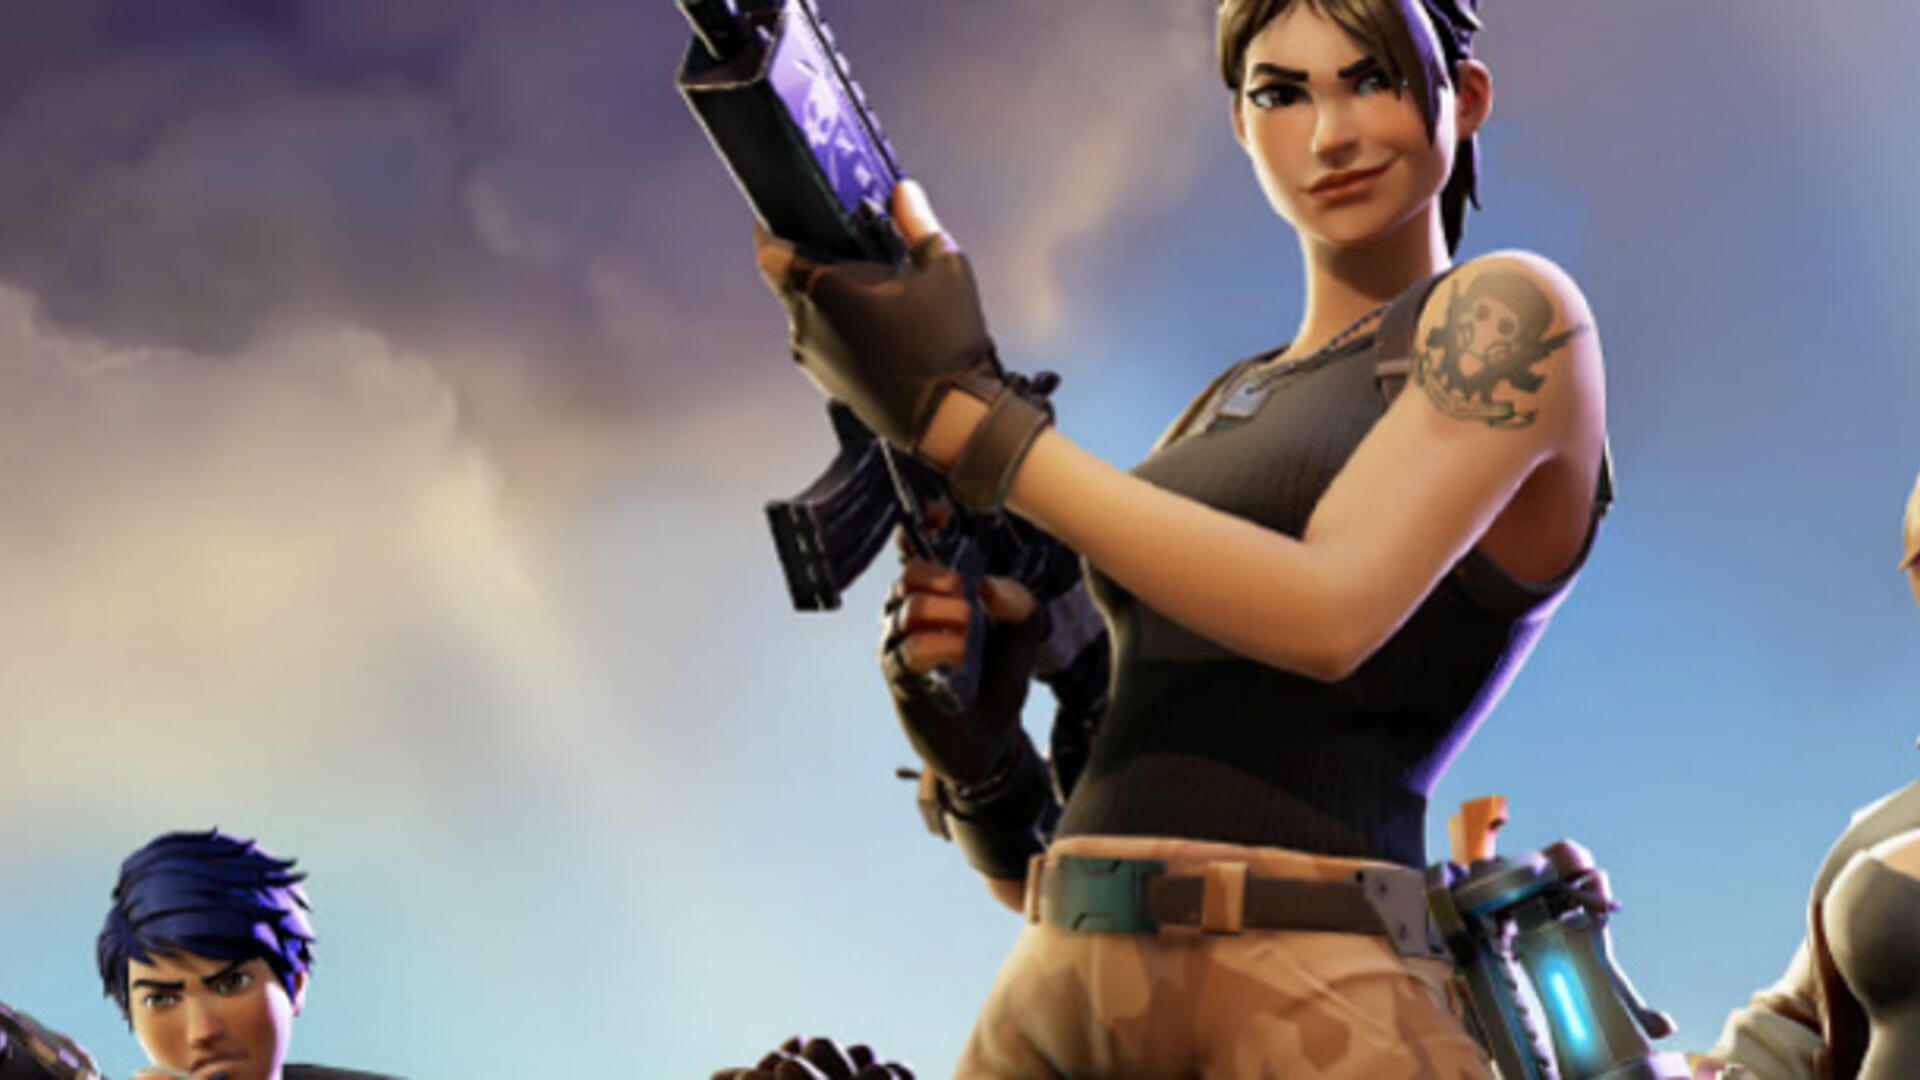 There's Now an Official Fortnite Amazon Store